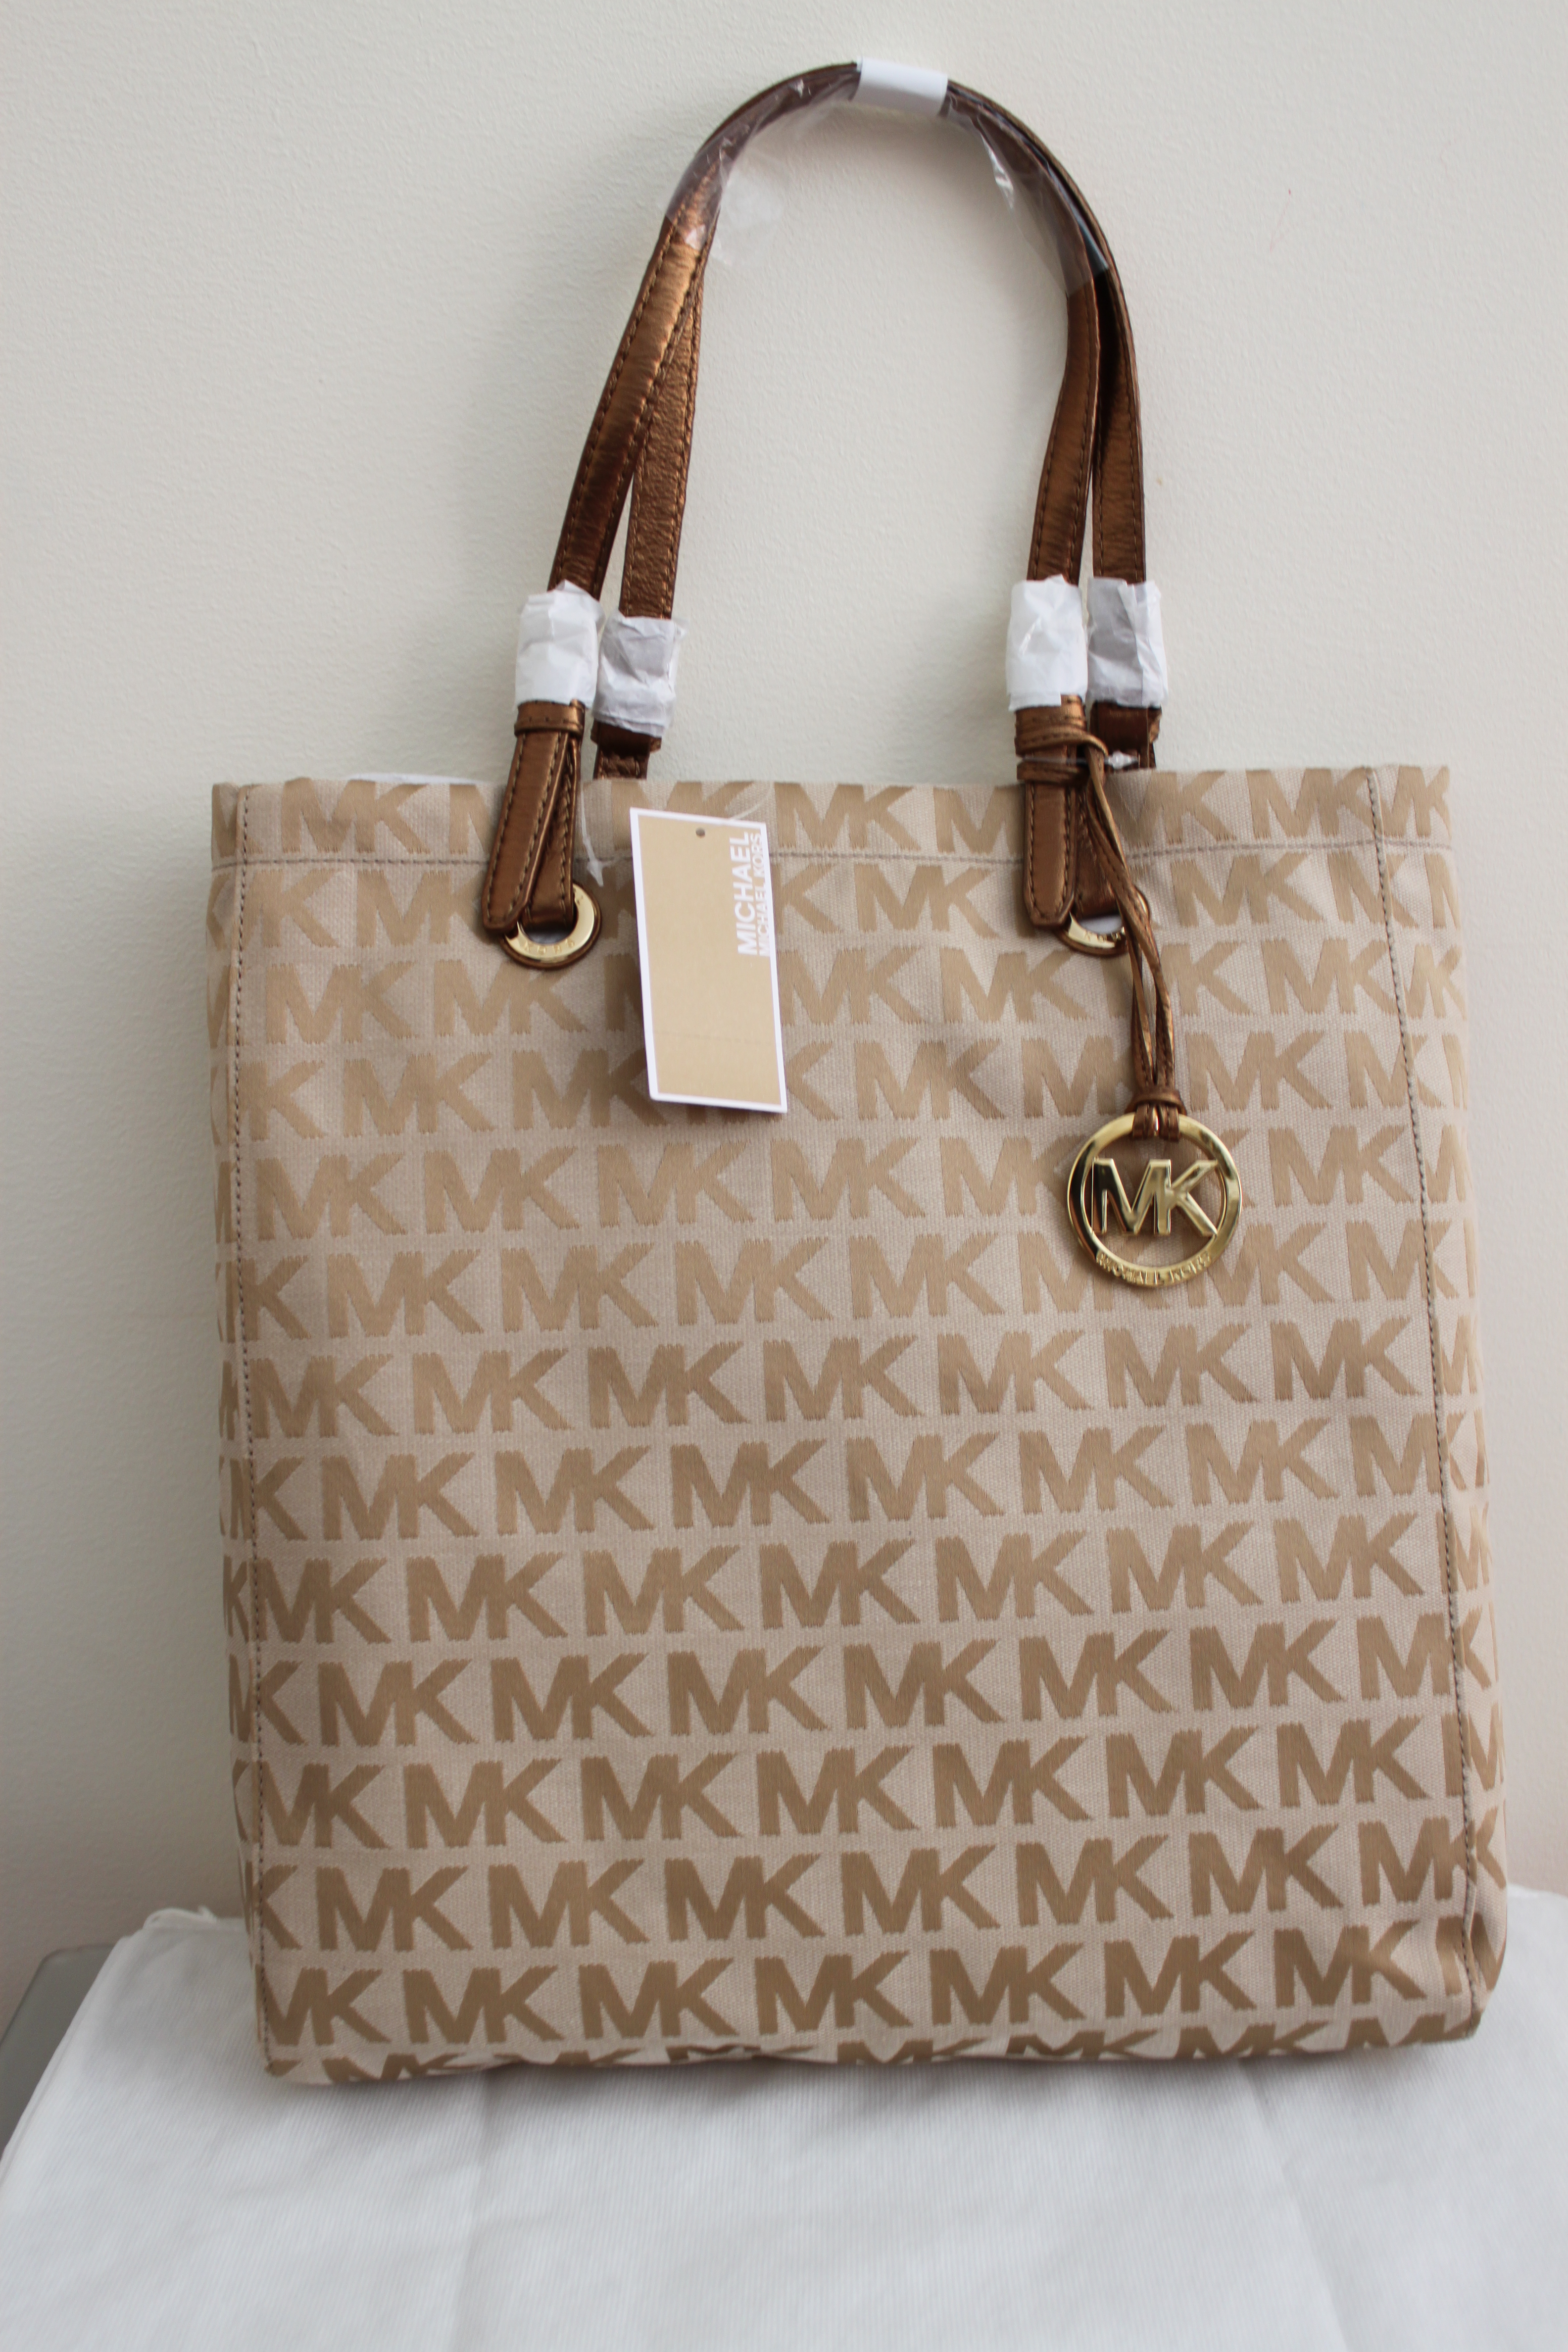 Reduced Michael Kors Totes - 2010 02 24 Michael Kors Tote Php 8200